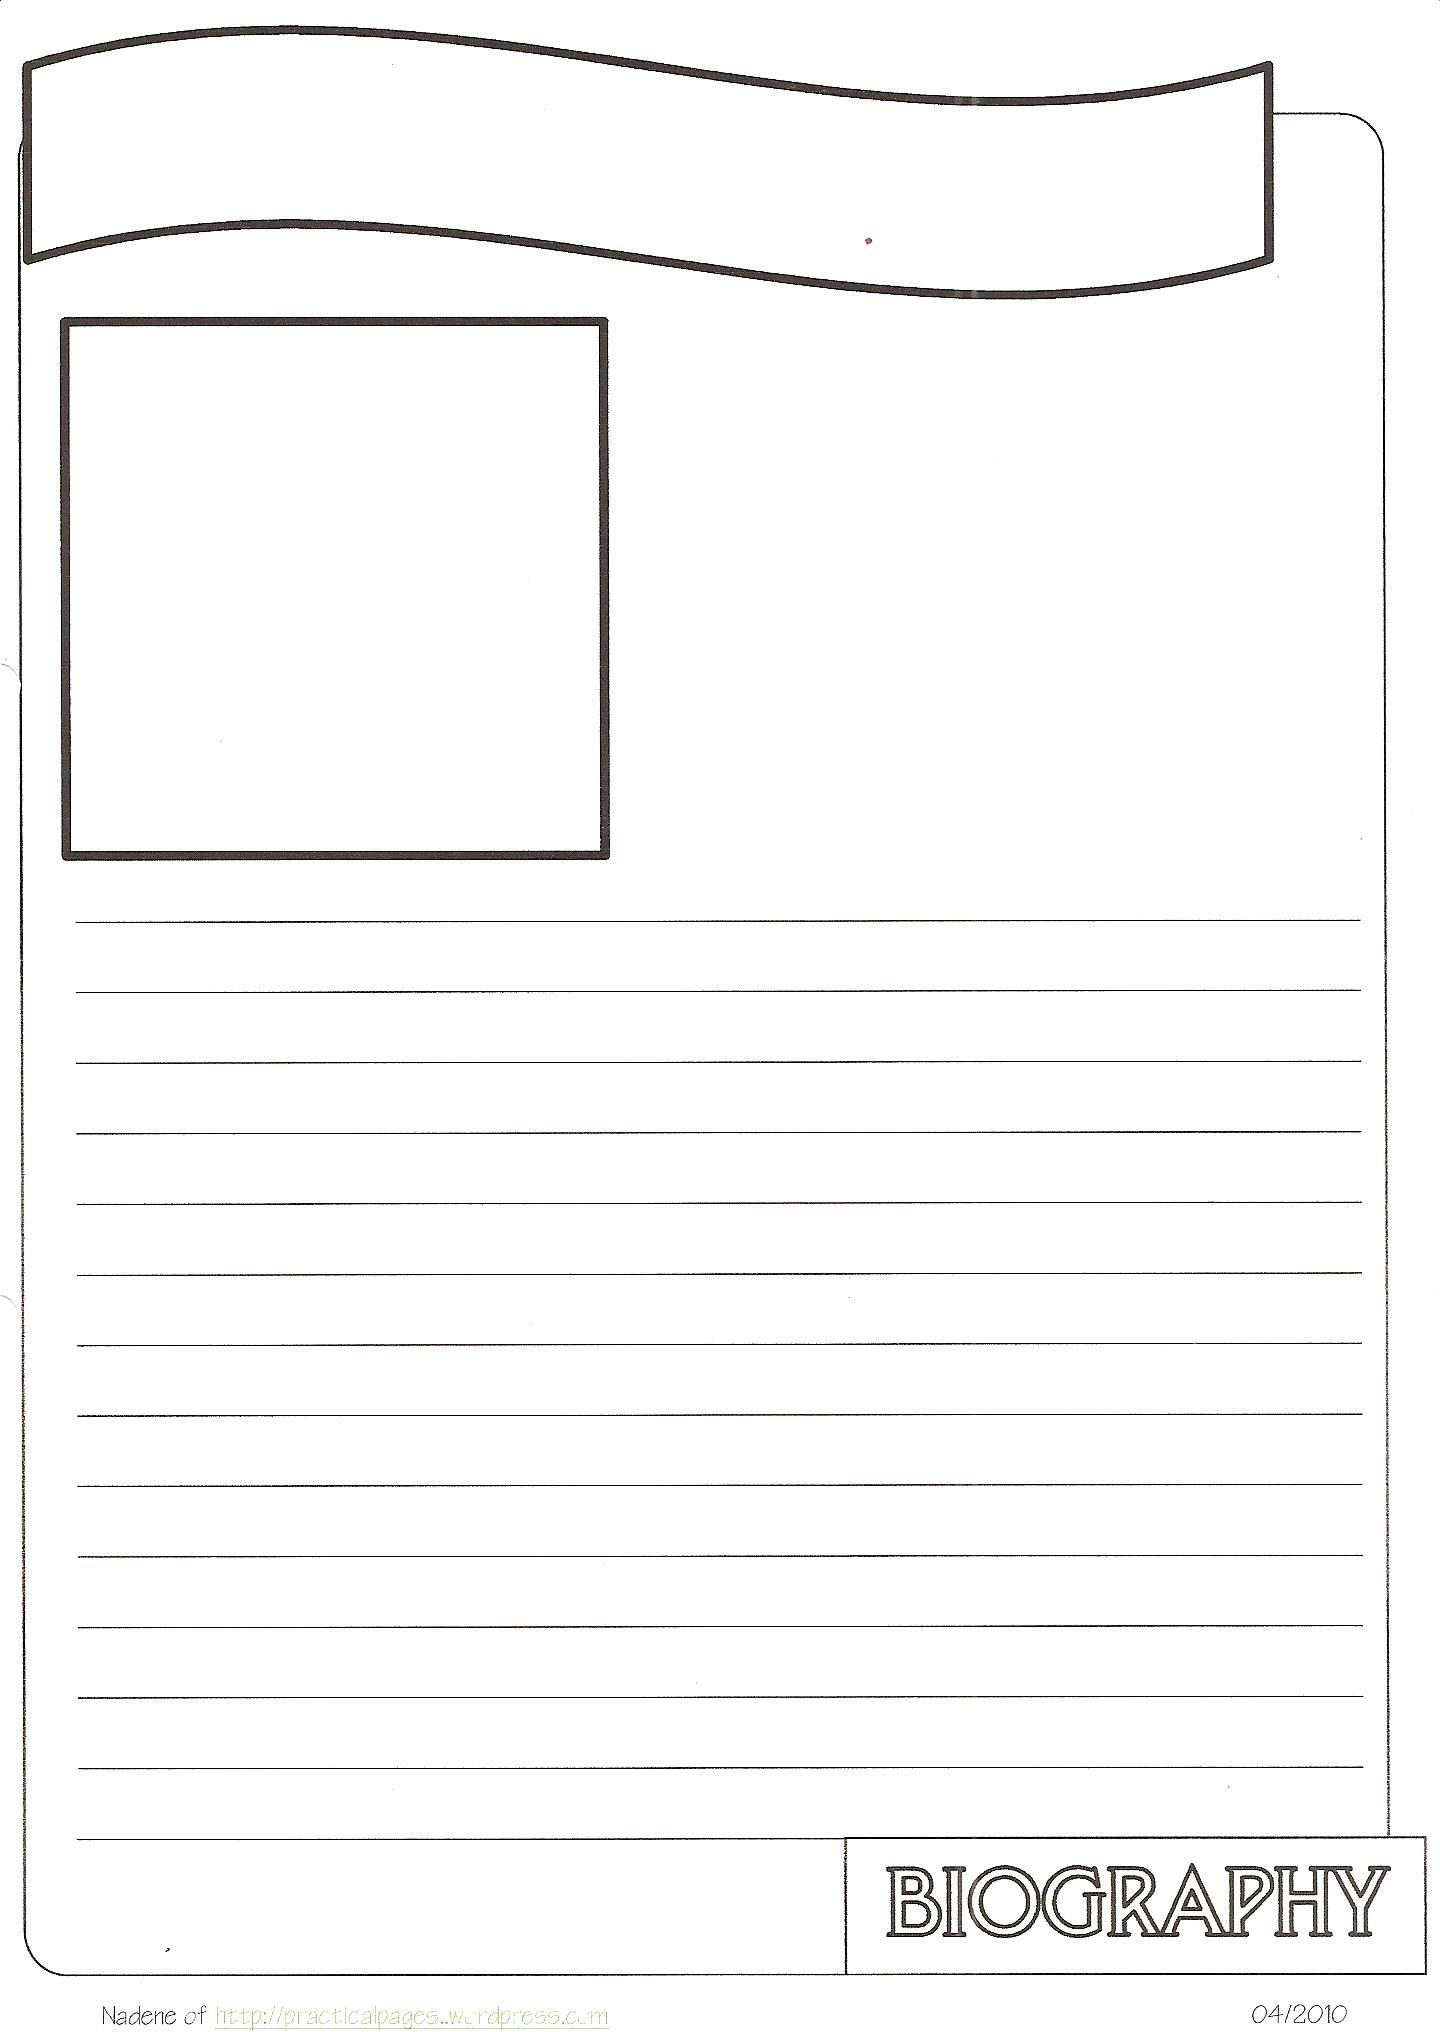 New Biography Notebook Page Templates   Biography template [ 2032 x 1440 Pixel ]